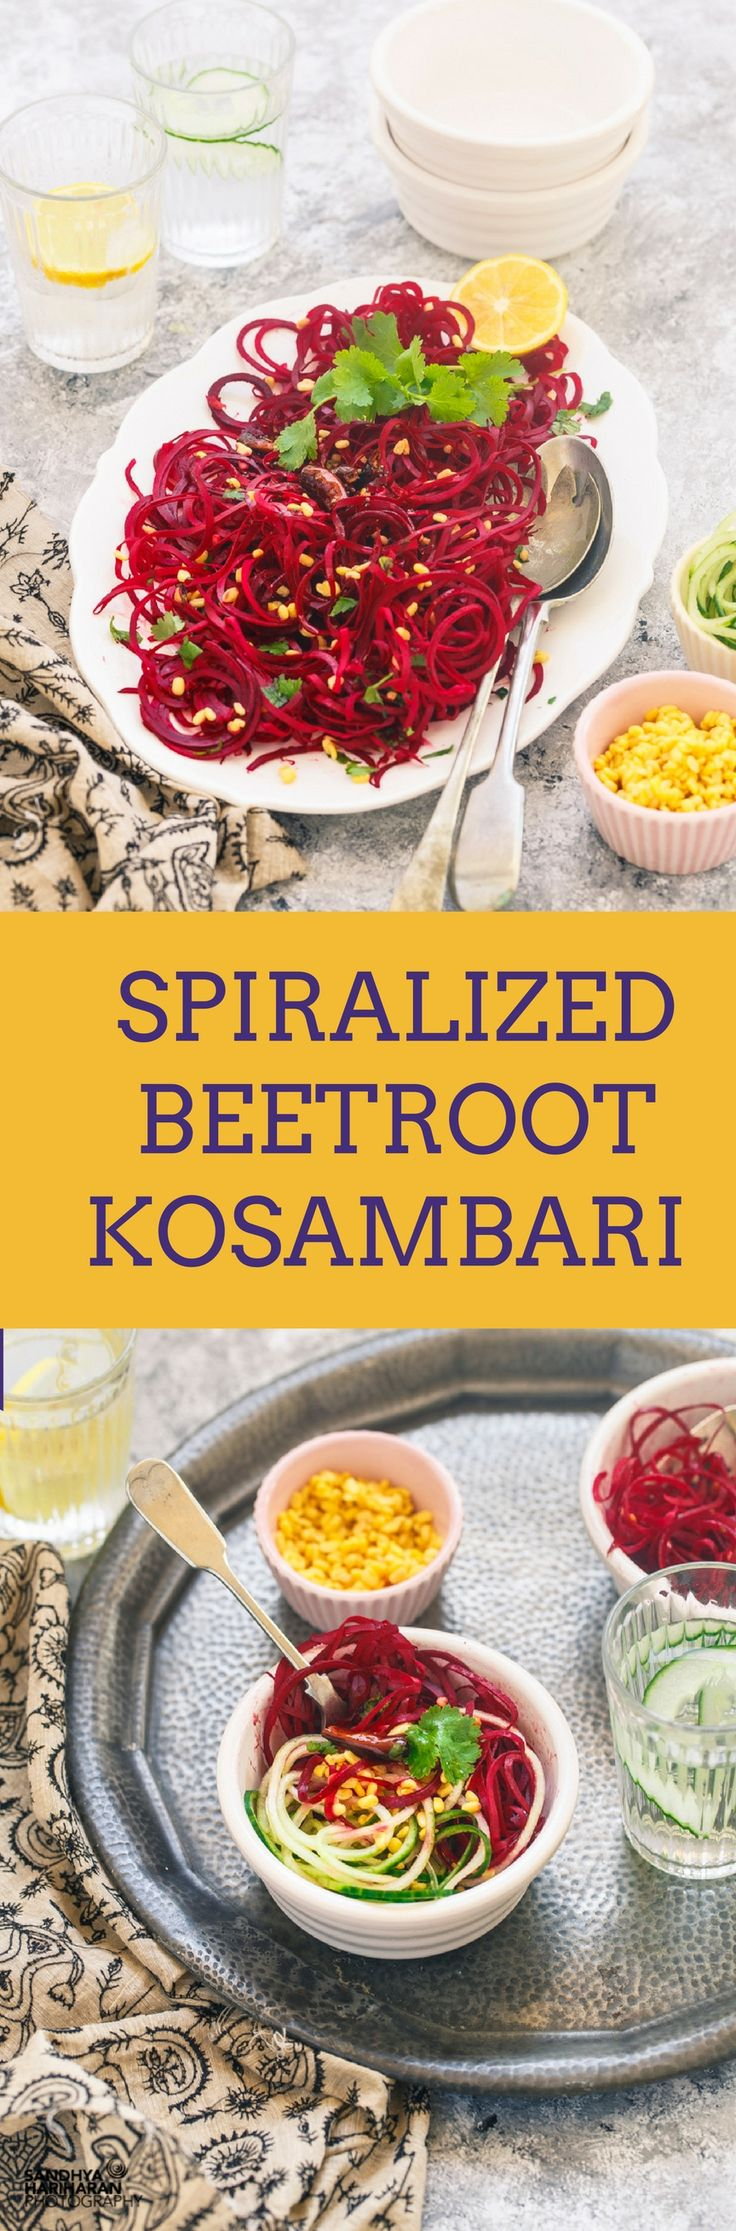 Spiralized Beetroot Kosambari